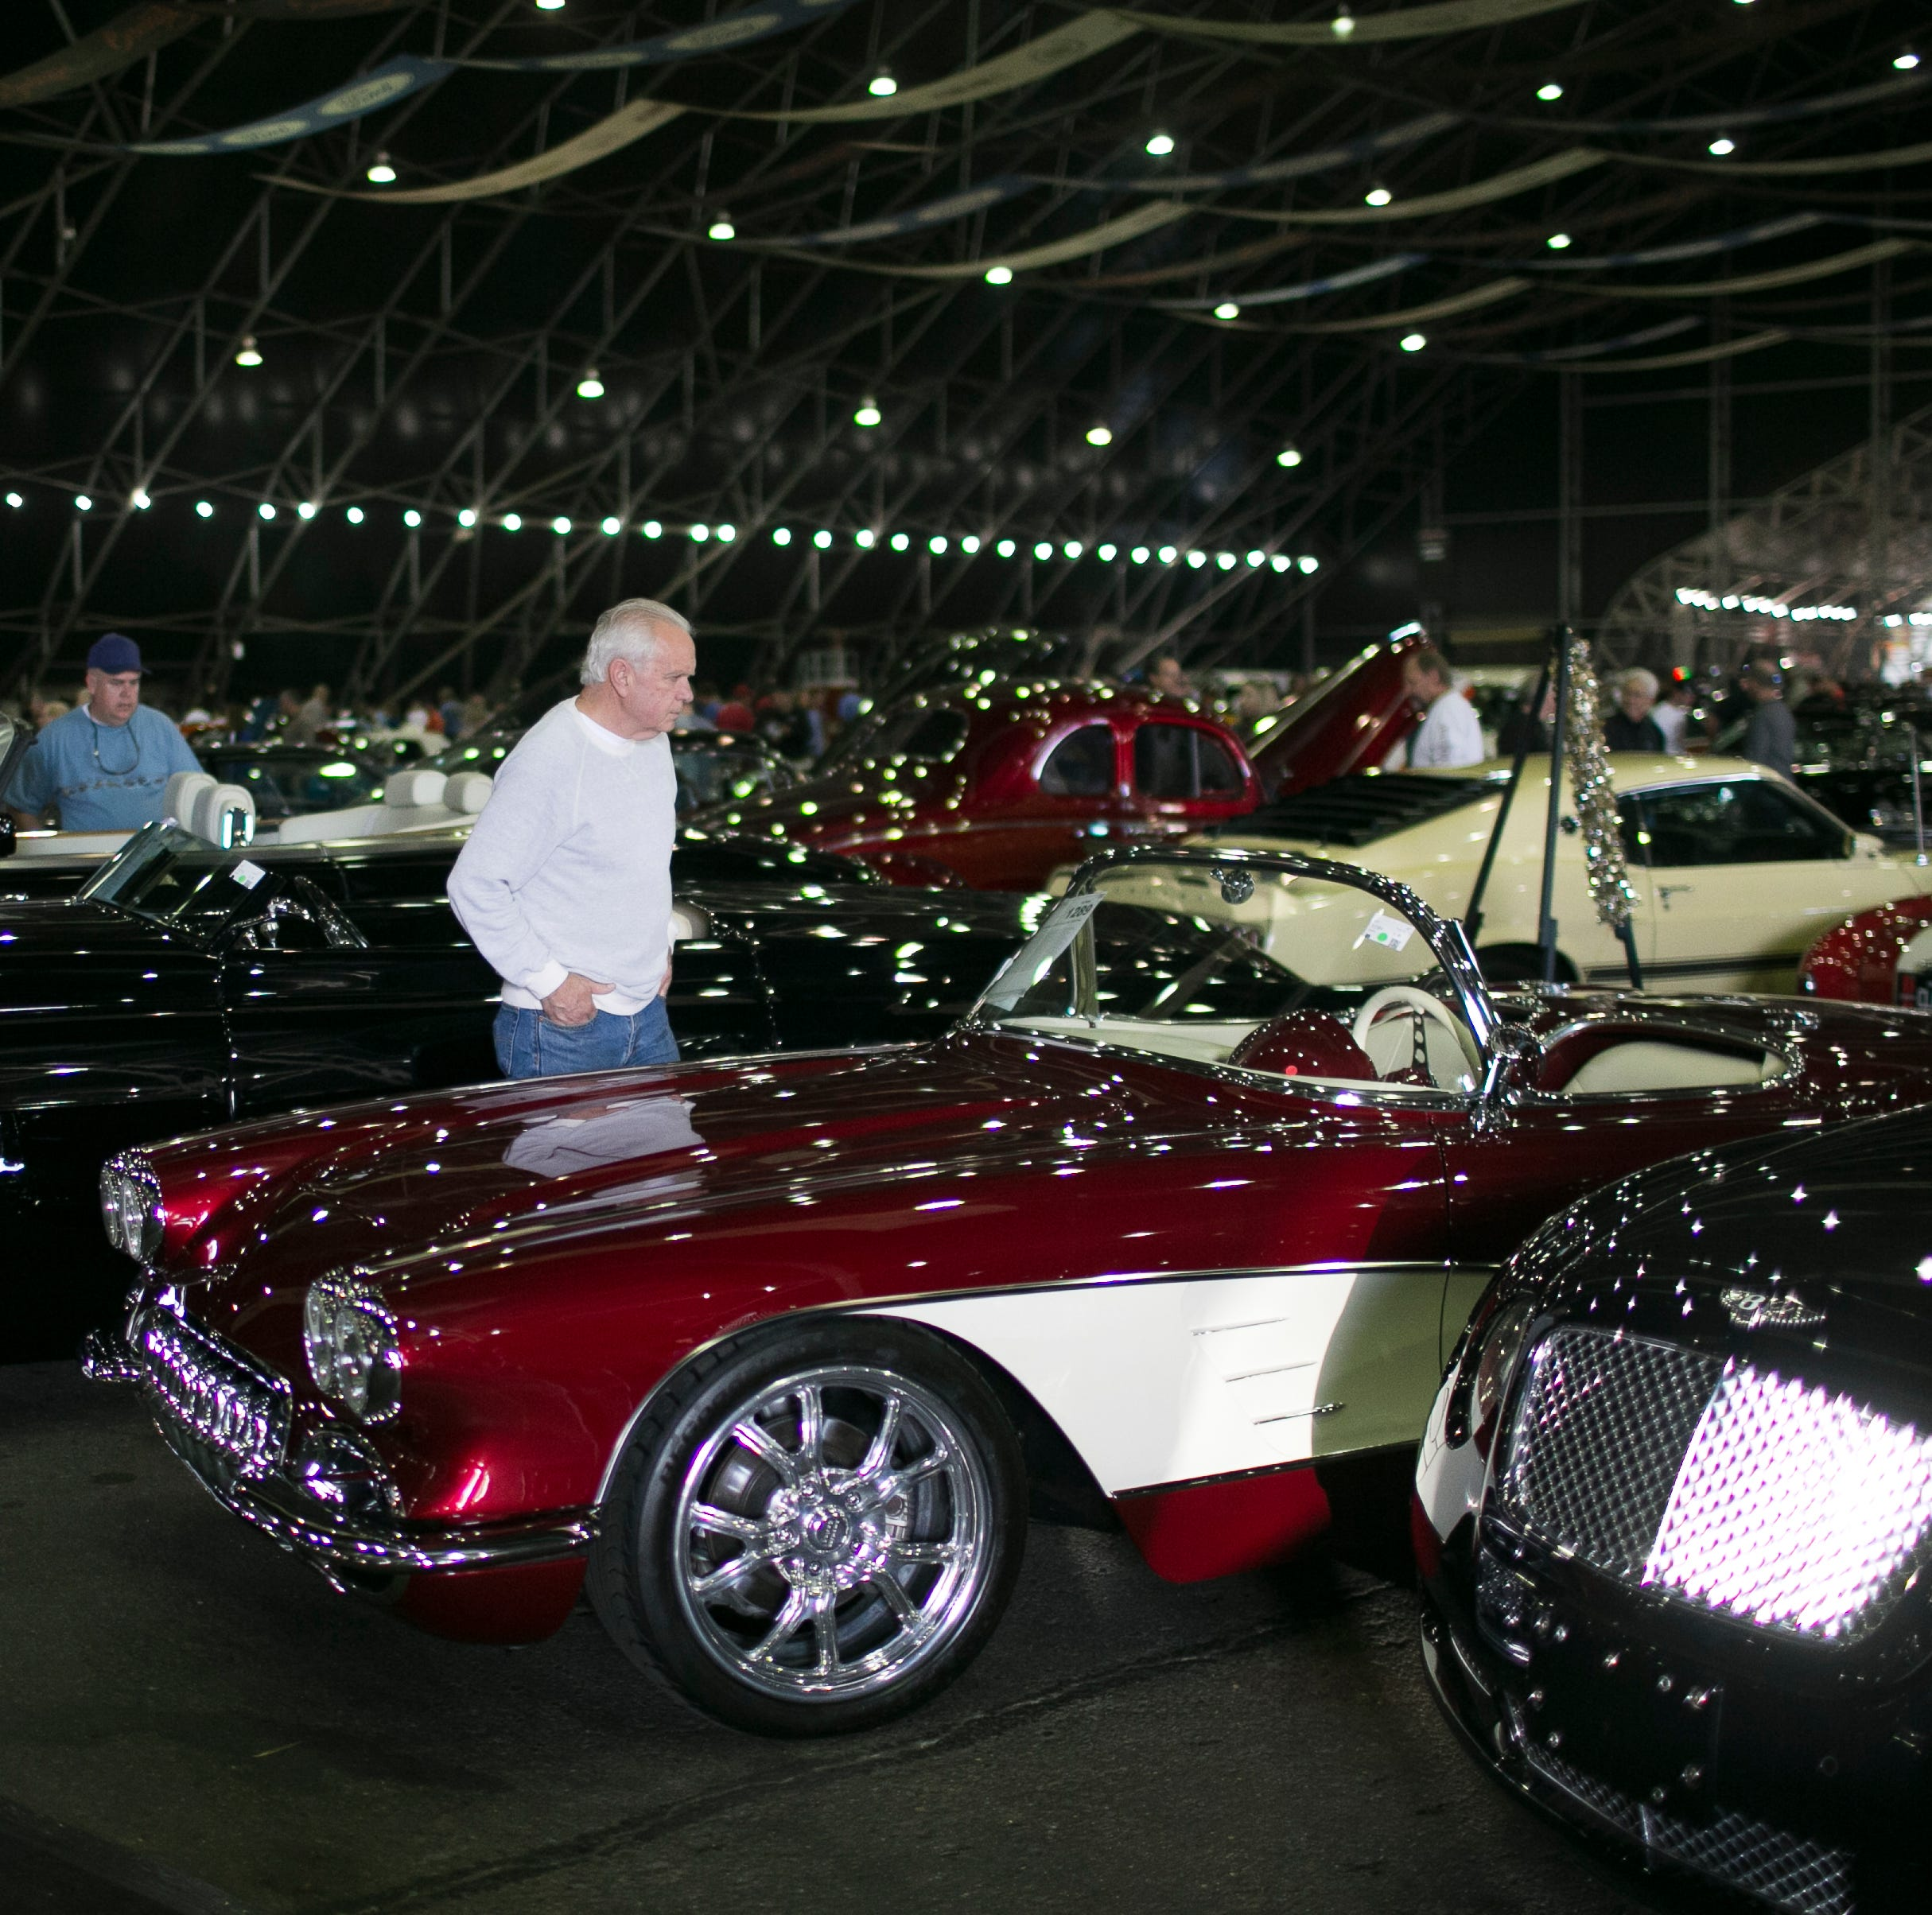 After 7 days and 7 collector-car auctions, a $7.6M bid tops Arizona Car Week